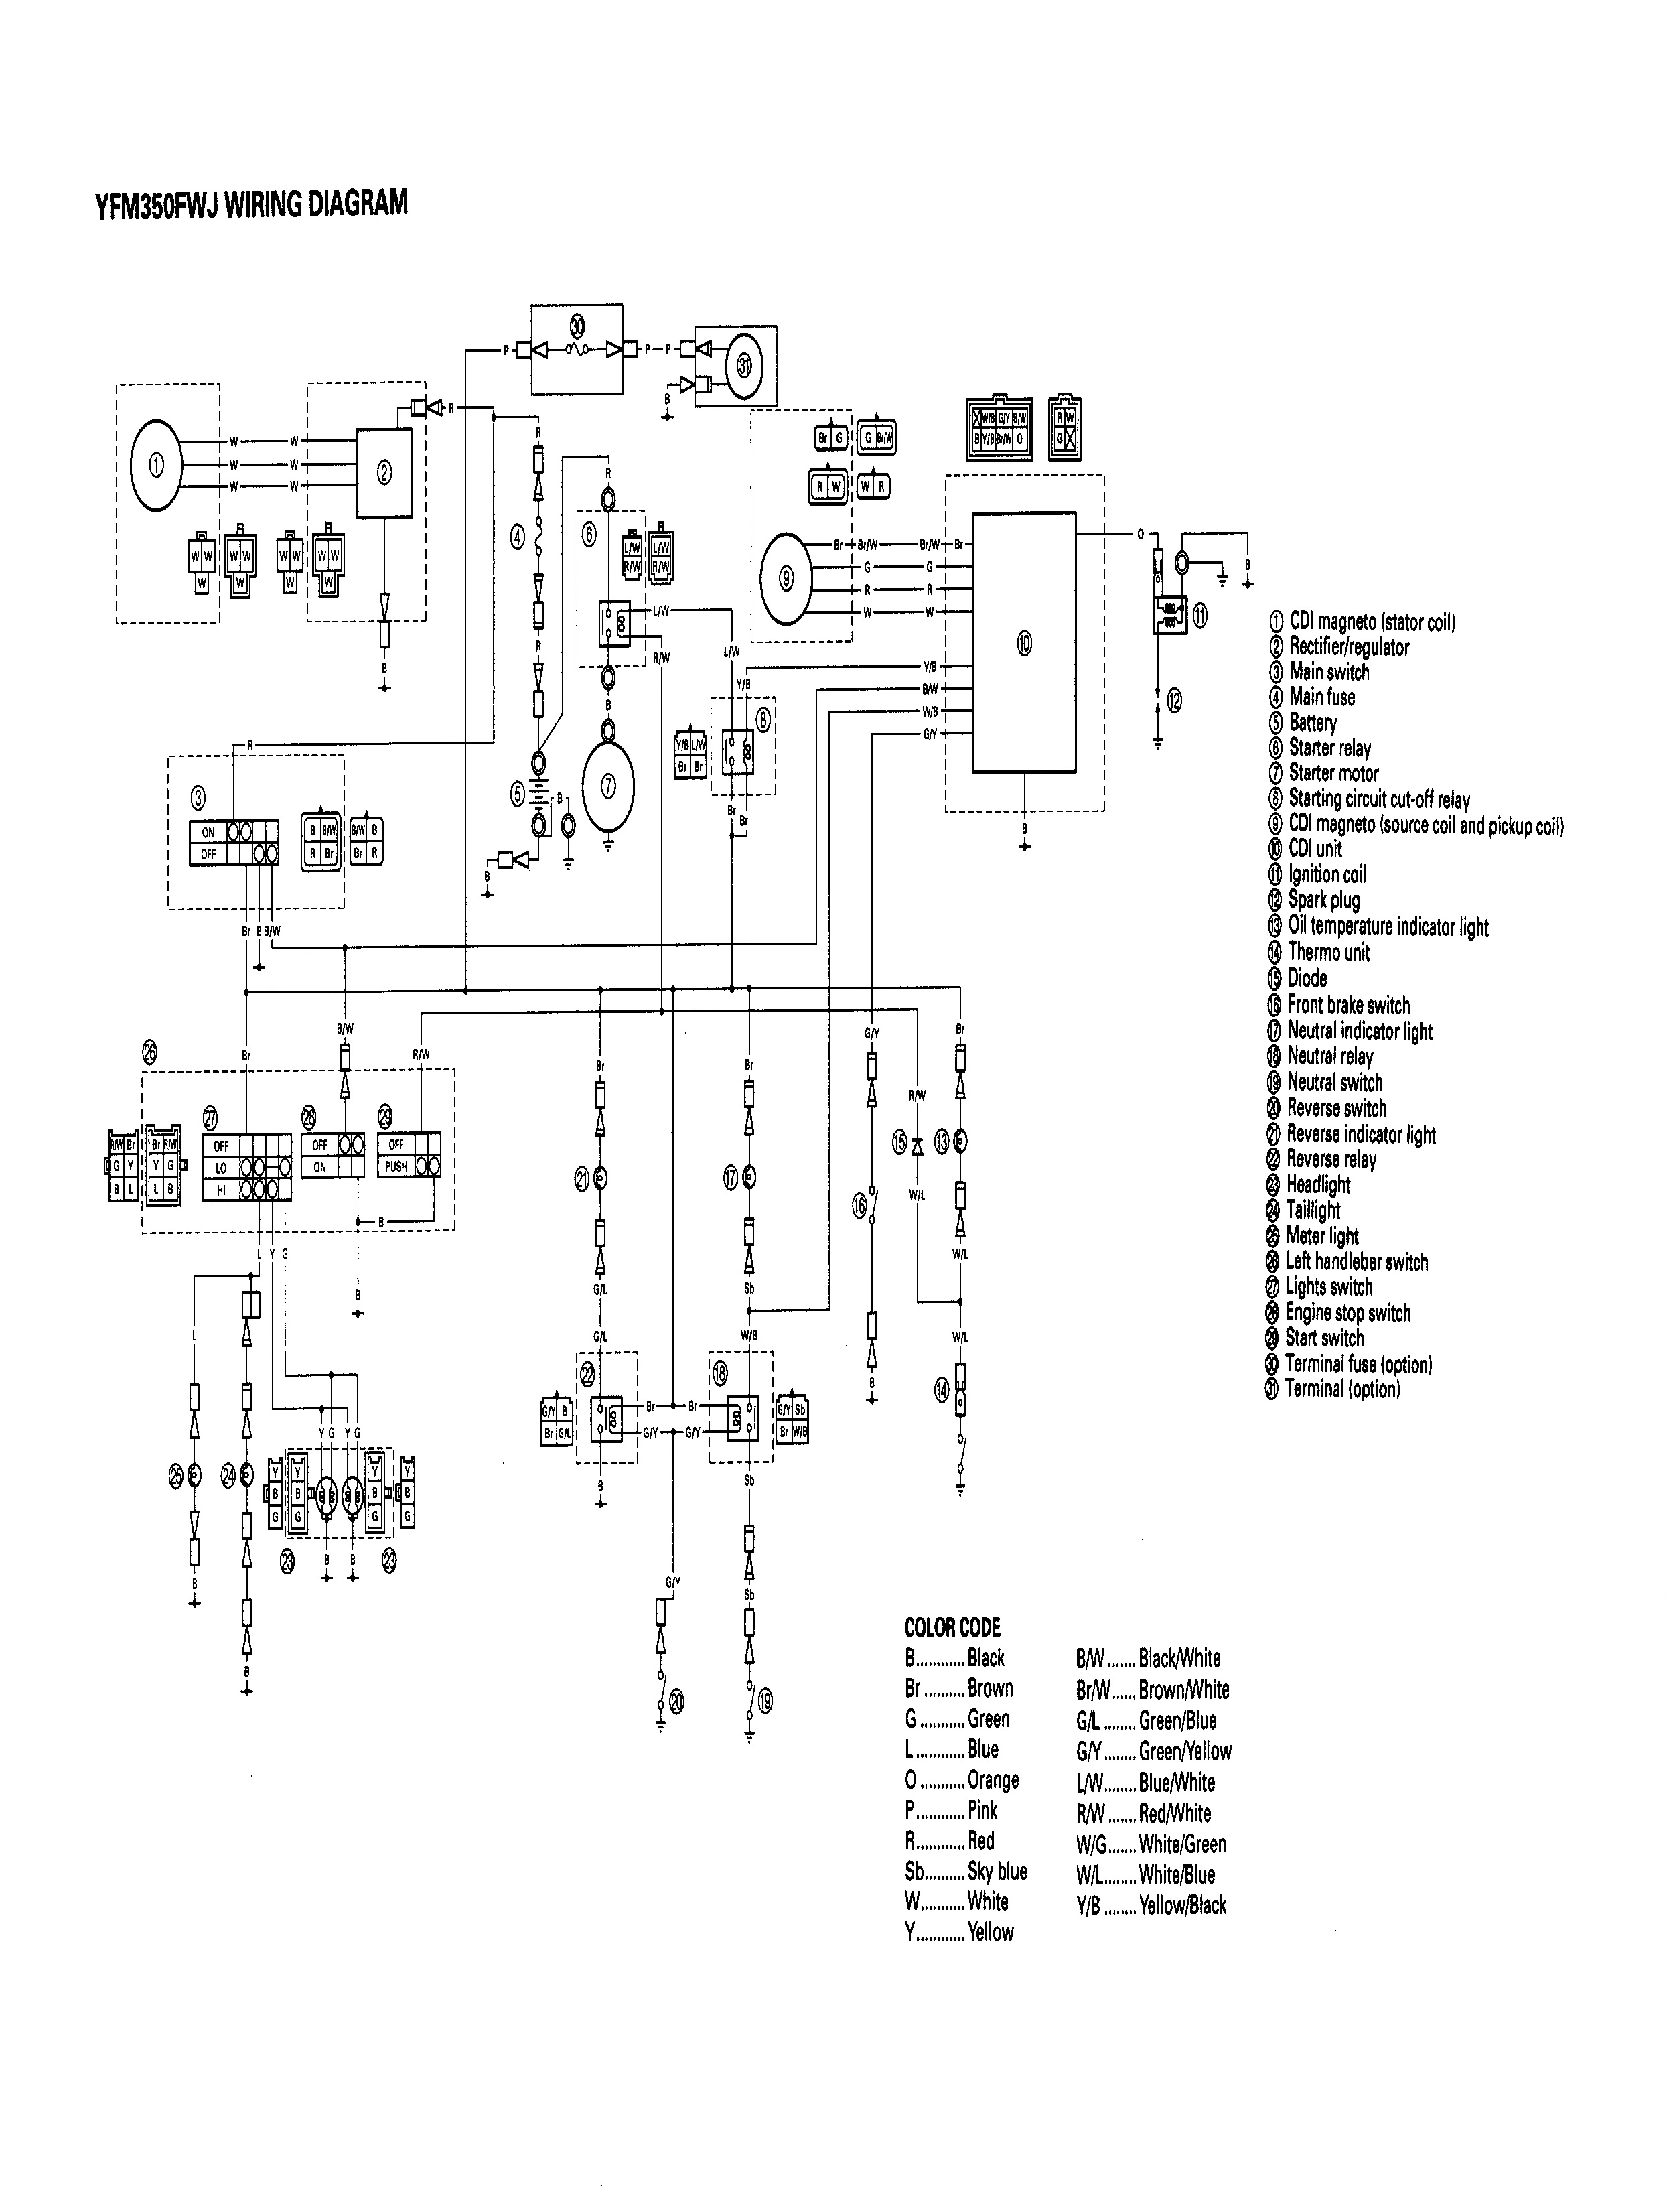 Grizzly 600 Wiring Diagram Wiring Diagram Skip Explorer Skip Explorer Pmov2019 It